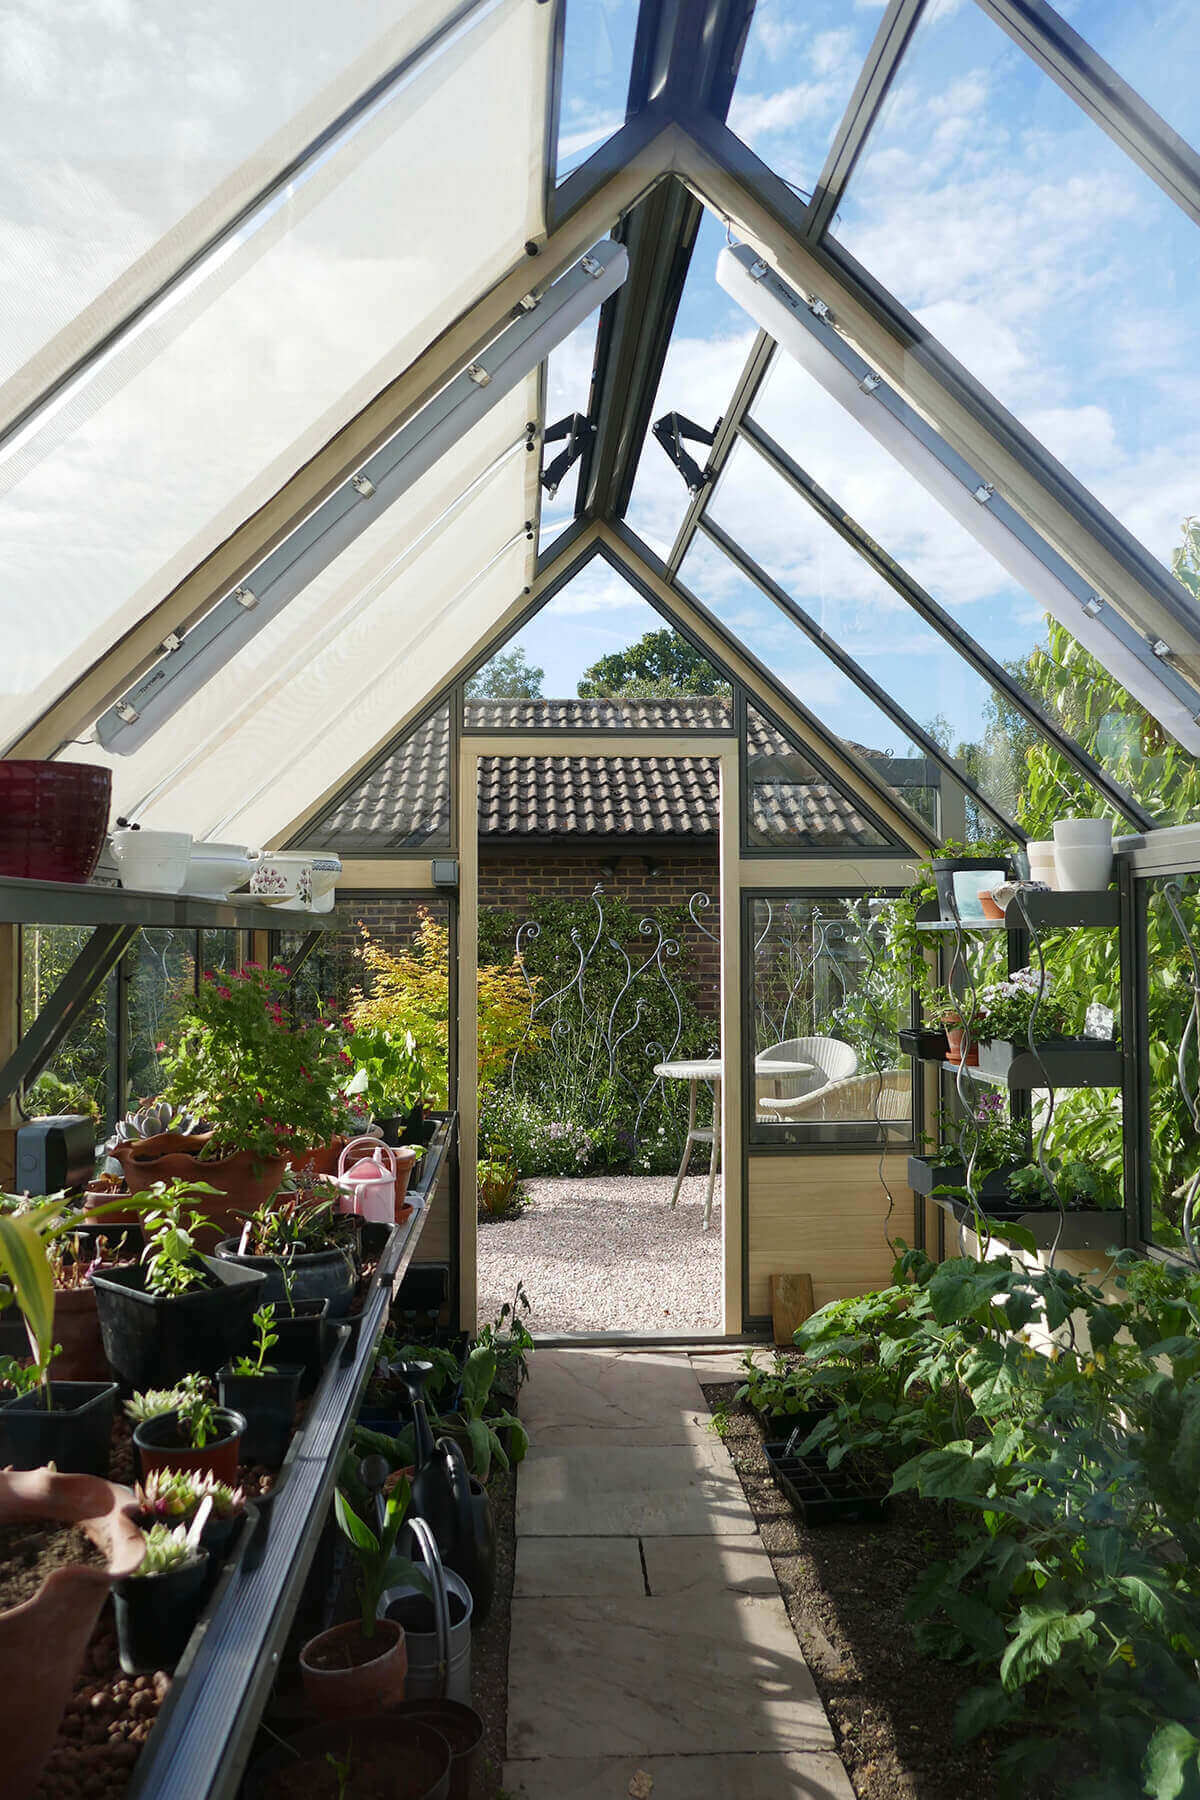 Internal view on large greenhouse